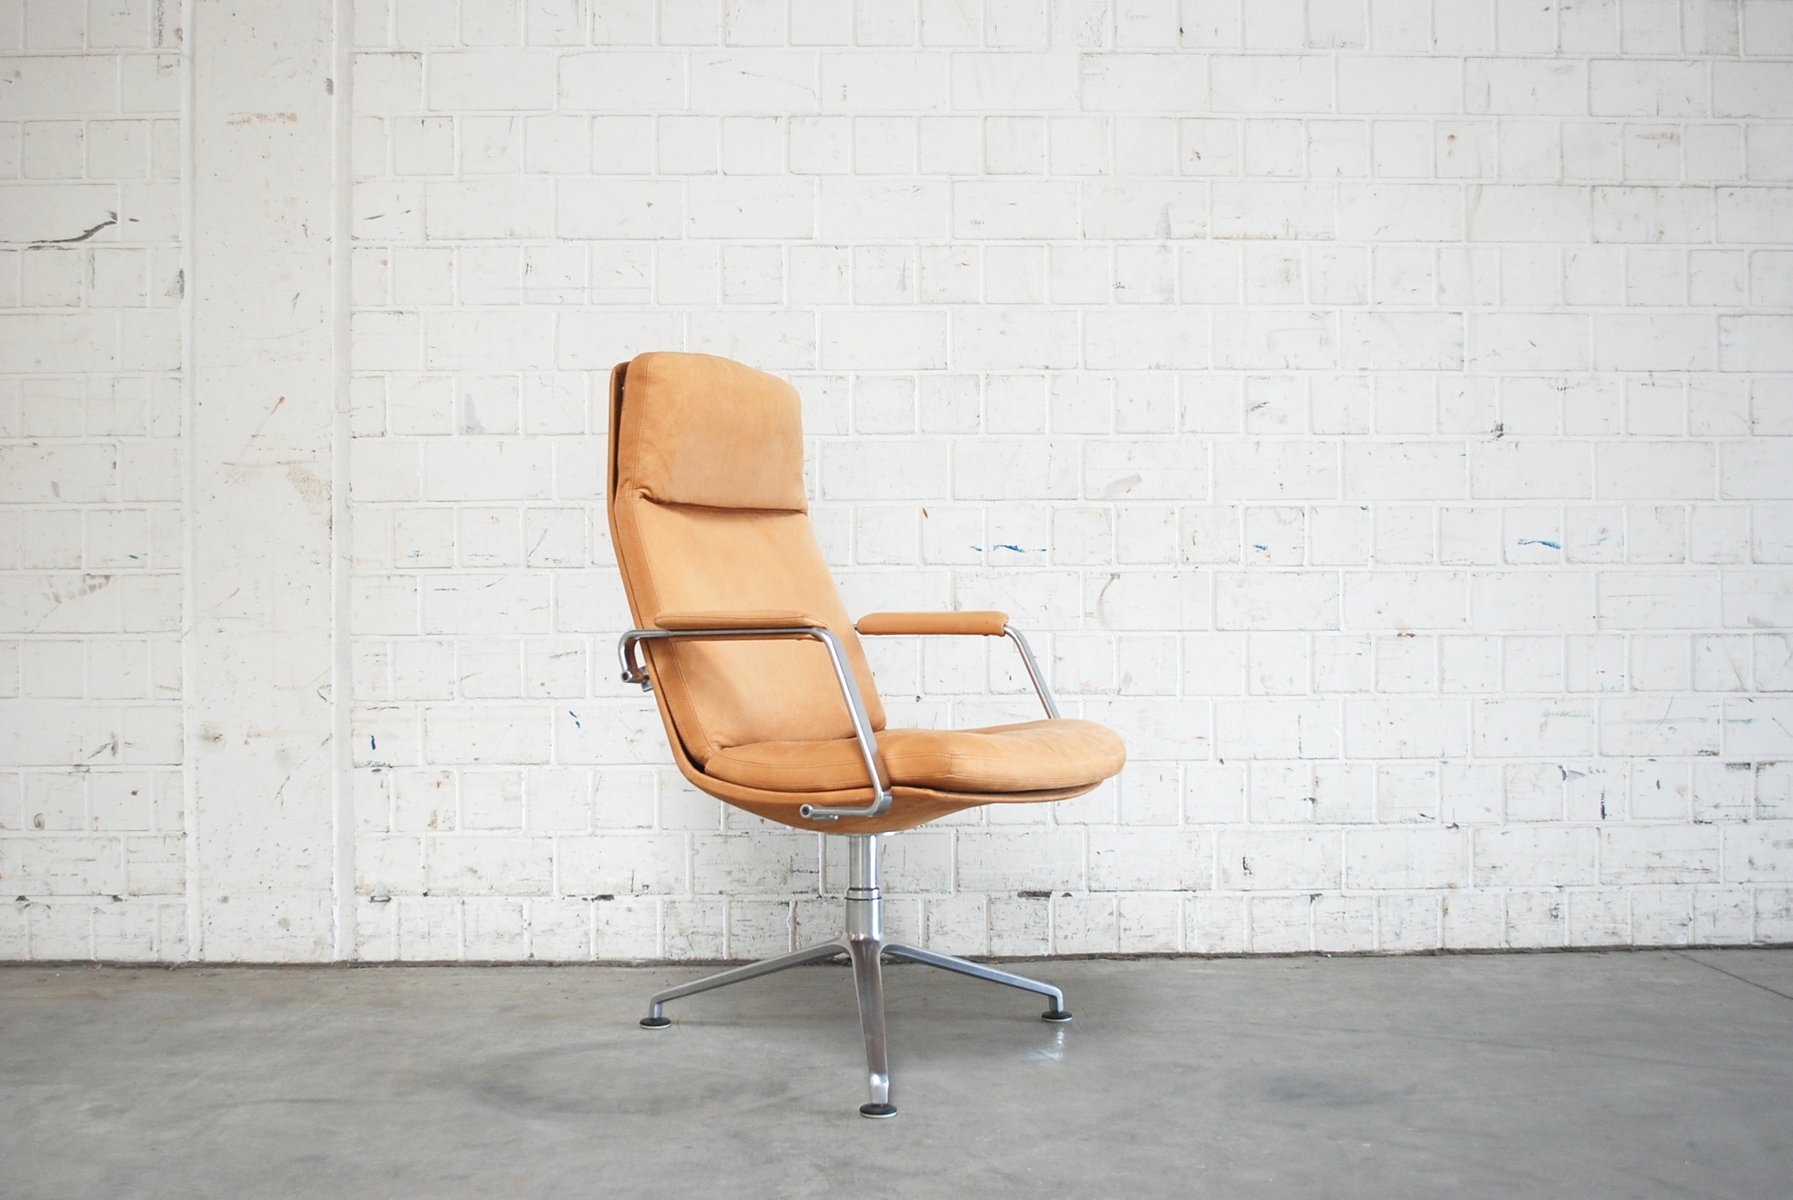 midcentury fk86 cognac sand leather office chair by preben fabricius u0026 jrgen kastholm for kill